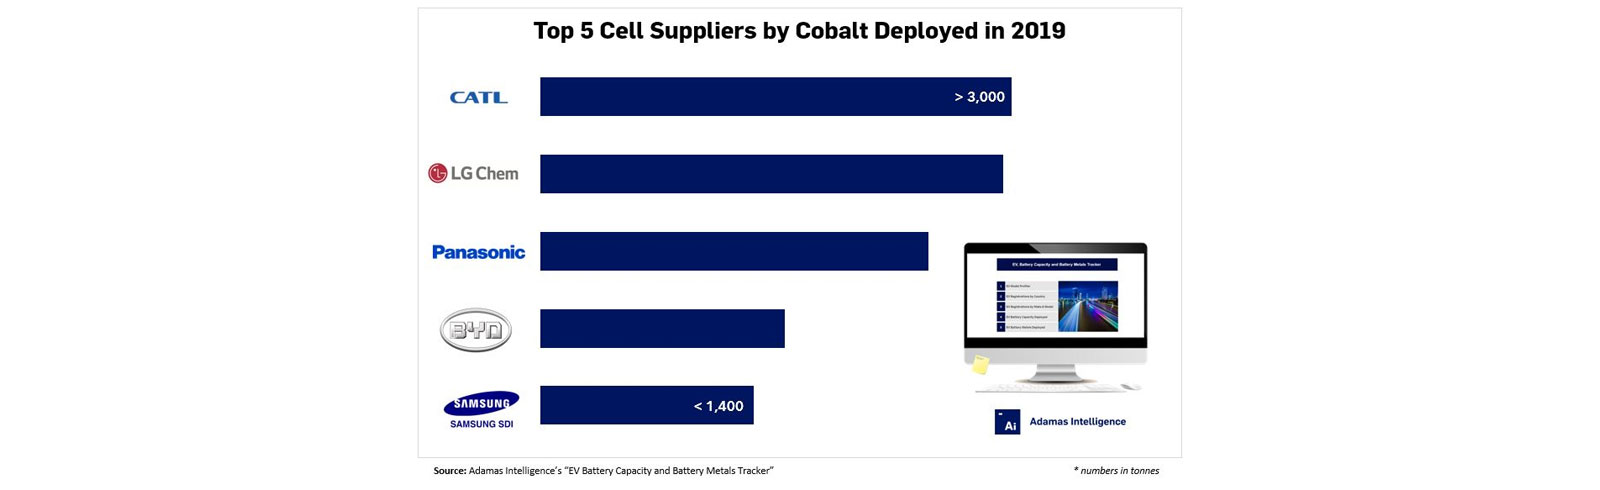 Only 5 EV battery suppliers account for 78% of the global cobalt demand in 2019